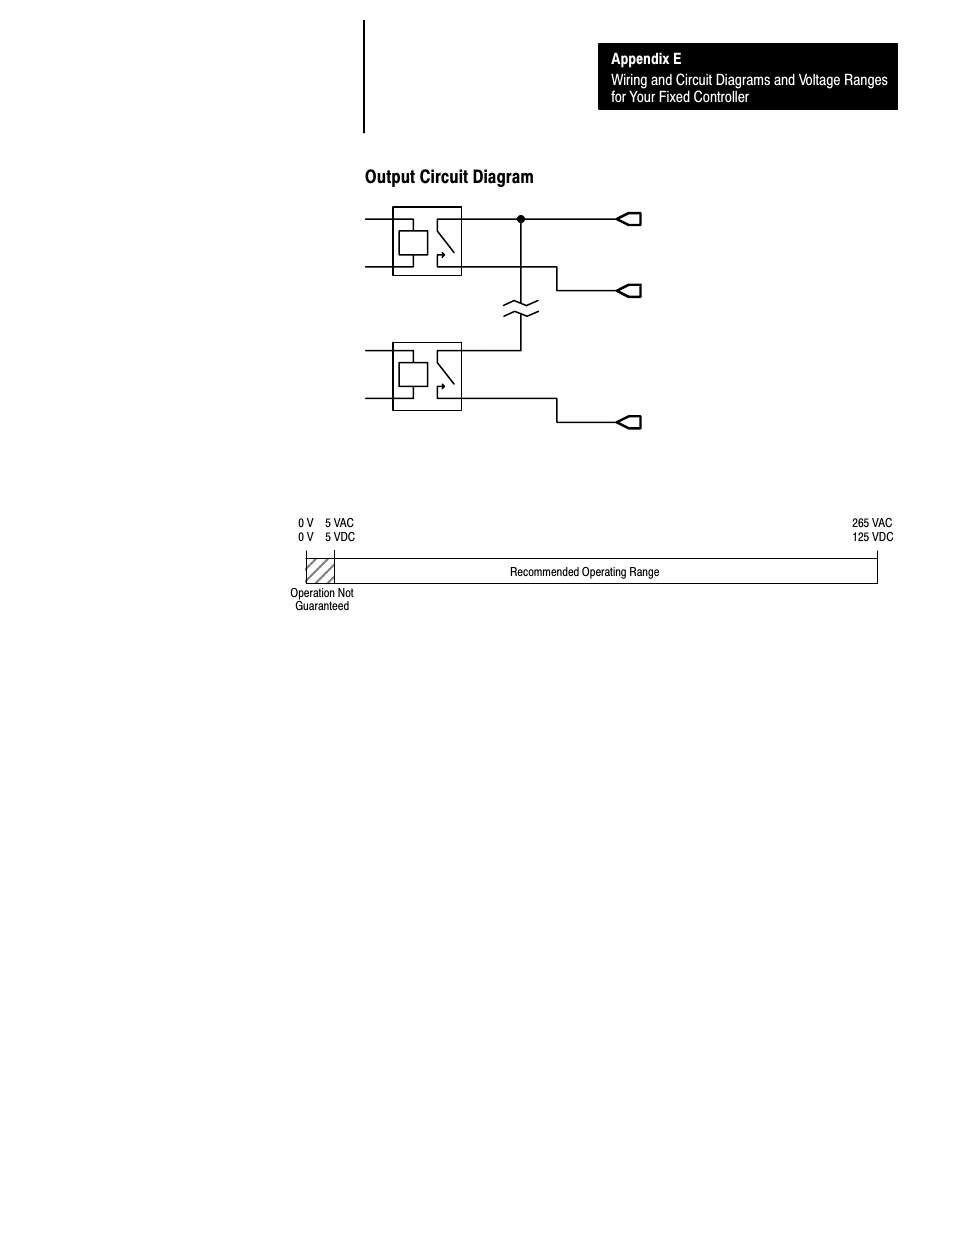 medium resolution of output circuit diagram e 39 operating voltage range rockwell automation 1747 l40 slc 500 fixed hardware style user manual page 182 223